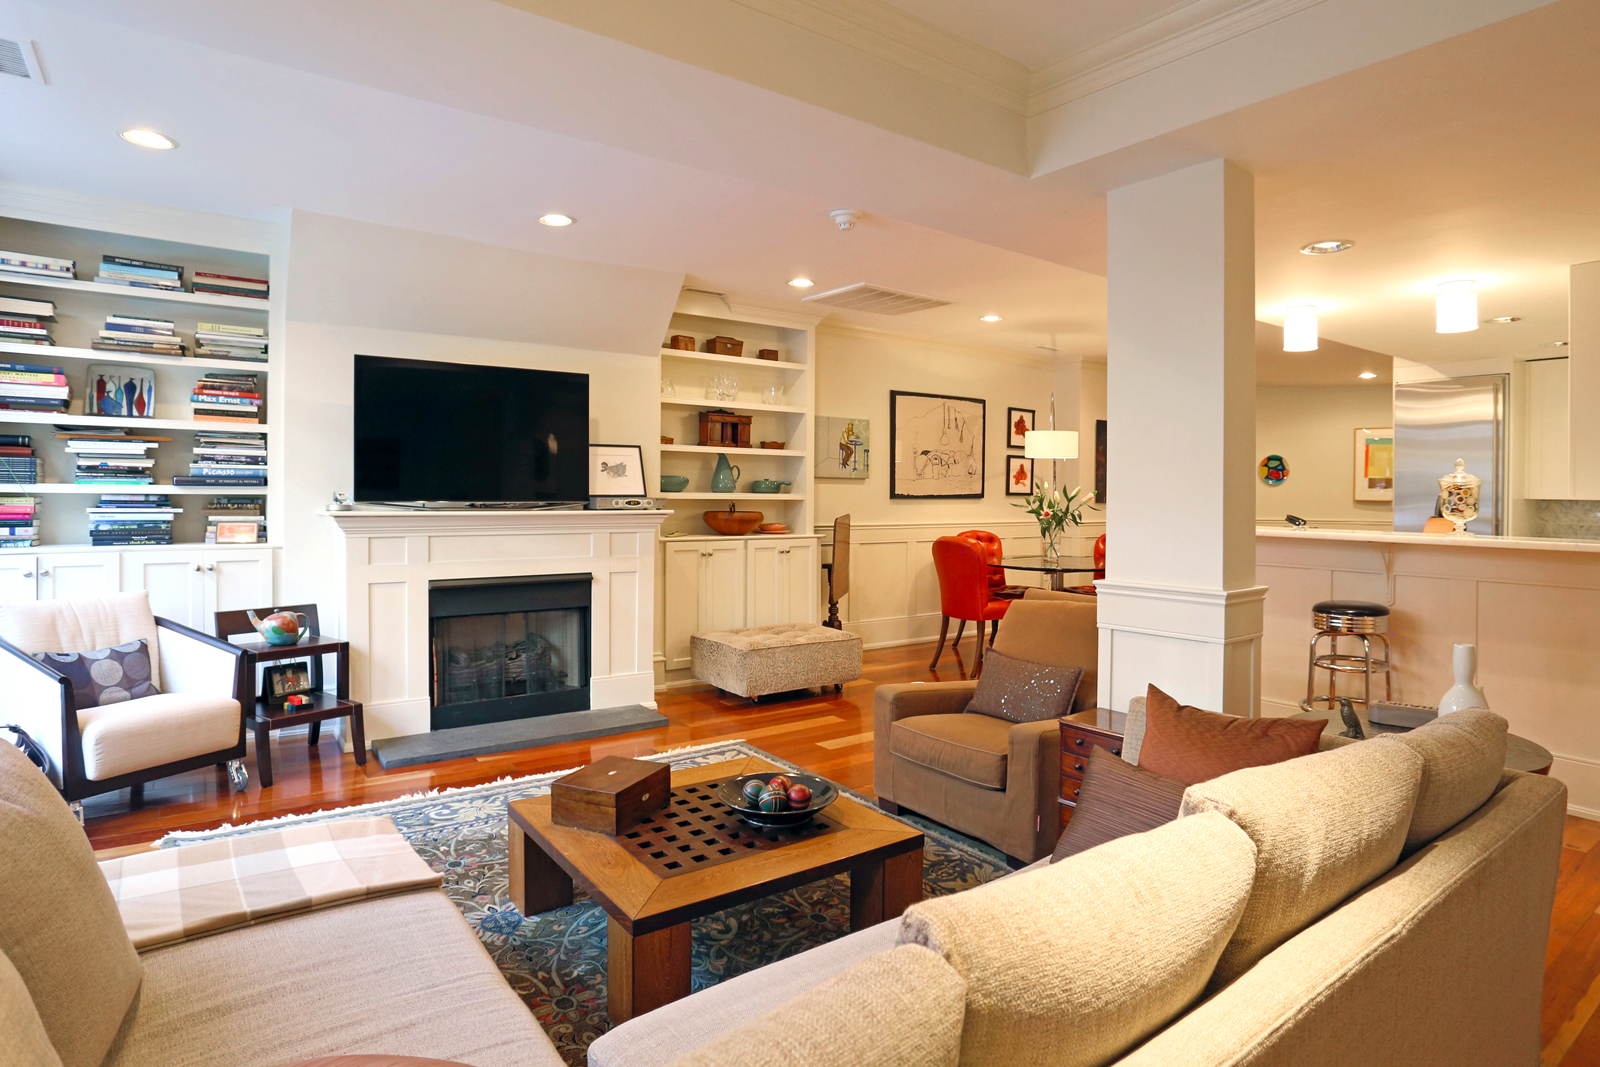 Condominium for Sale at Stunning garden duplex on desirable Waltham Street, steps from Ringgold Park. 83 Waltham St Unit 1 South End, Boston, Massachusetts, 02118 United States